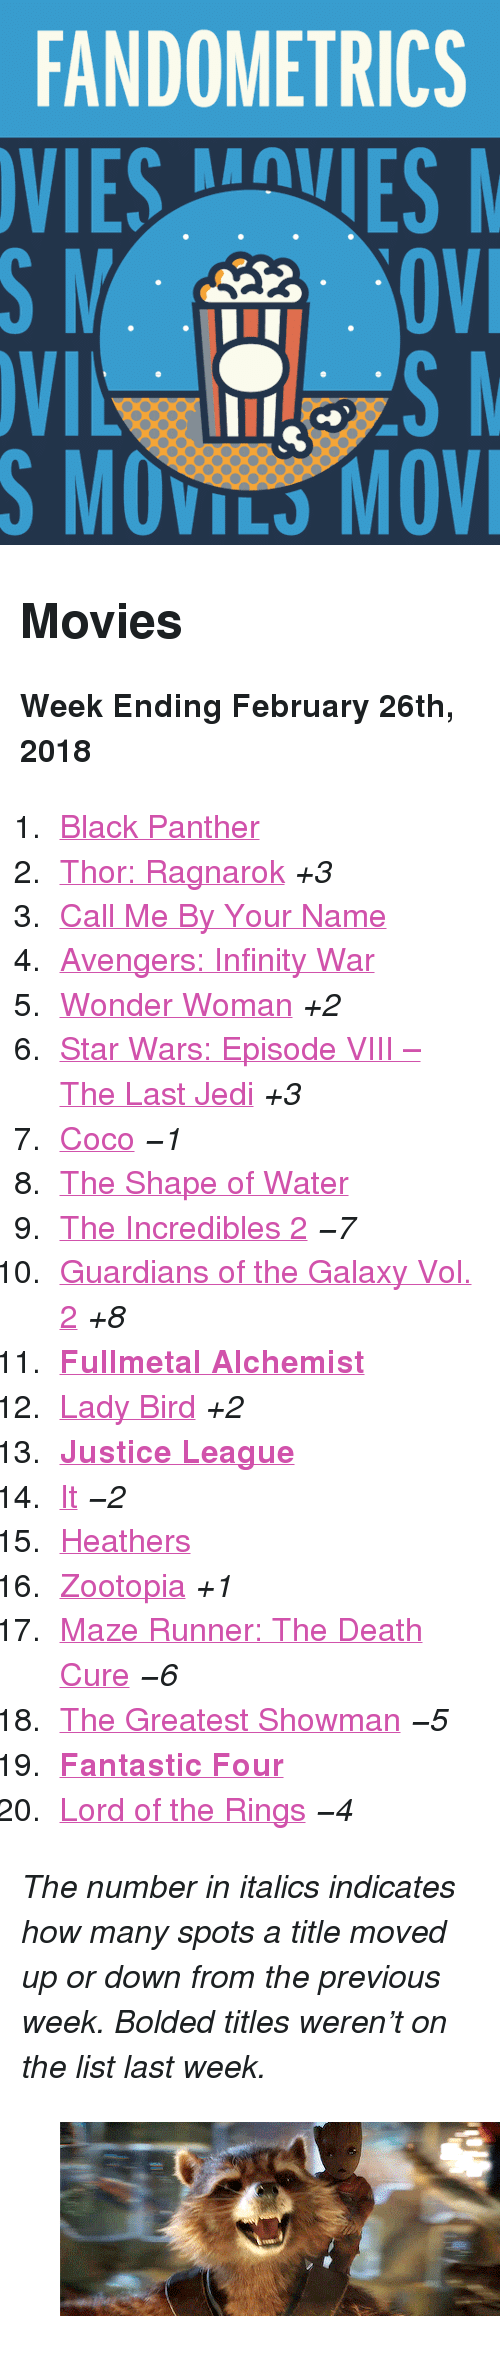 """Fullmetal Alchemist: FANDOMETRICS  SMOVILS MOV <h2>Movies</h2><p><b>Week Ending February 26th, 2018</b></p><ol><li><a href=""""http://www.tumblr.com/search/black%20panther"""">Black Panther</a></li>  <li><a href=""""http://www.tumblr.com/search/thor%20ragnarok"""">Thor: Ragnarok</a><i>+3</i></li>  <li><a href=""""http://www.tumblr.com/search/call%20me%20by%20your%20name"""">Call Me By Your Name</a></li>  <li><a href=""""http://www.tumblr.com/search/infinity%20war"""">Avengers: Infinity War</a></li>  <li><a href=""""http://www.tumblr.com/search/wonder%20woman"""">Wonder Woman</a><i>+2</i></li>  <li><a href=""""http://www.tumblr.com/search/the%20last%20jedi"""">Star Wars: Episode VIII – The Last Jedi</a><i>+3</i></li>  <li><a href=""""http://www.tumblr.com/search/coco"""">Coco</a><i><i>−1</i></i></li>  <li><a href=""""http://www.tumblr.com/search/the%20shape%20of%20water"""">The Shape of Water</a></li>  <li><a href=""""http://www.tumblr.com/search/the%20incredibles"""">The Incredibles 2</a><i><i>−7</i></i></li>  <li><a href=""""http://www.tumblr.com/search/guardians%20of%20the%20galaxy"""">Guardians of the Galaxy Vol. 2</a><i>+8</i></li>  <li><a href=""""http://www.tumblr.com/search/fma%20live%20action""""><b>Fullmetal Alchemist</b></a></li>  <li><a href=""""http://www.tumblr.com/search/lady%20bird"""">Lady Bird</a><i>+2</i></li>  <li><a href=""""http://www.tumblr.com/search/justice%20league""""><b>Justice League</b></a></li>  <li><a href=""""http://www.tumblr.com/search/it%202017"""">It</a><i><i>−2</i></i></li>  <li><a href=""""http://www.tumblr.com/search/heathers"""">Heathers</a></li>  <li><a href=""""http://www.tumblr.com/search/zootopia"""">Zootopia</a><i>+1</i></li>  <li><a href=""""http://www.tumblr.com/search/the%20maze%20runner"""">Maze Runner: The Death Cure</a><i><i>−6</i></i></li>  <li><a href=""""http://www.tumblr.com/search/the%20greatest%20showman"""">The Greatest Showman</a><i><i>−5</i></i></li>  <li><a href=""""http://www.tumblr.com/search/fantastic%20four""""><b>Fantastic Four</b></a></li>  <li><a href=""""http://www.tumblr.com/search/lotr"""">Lord of the Rings</a><i>"""